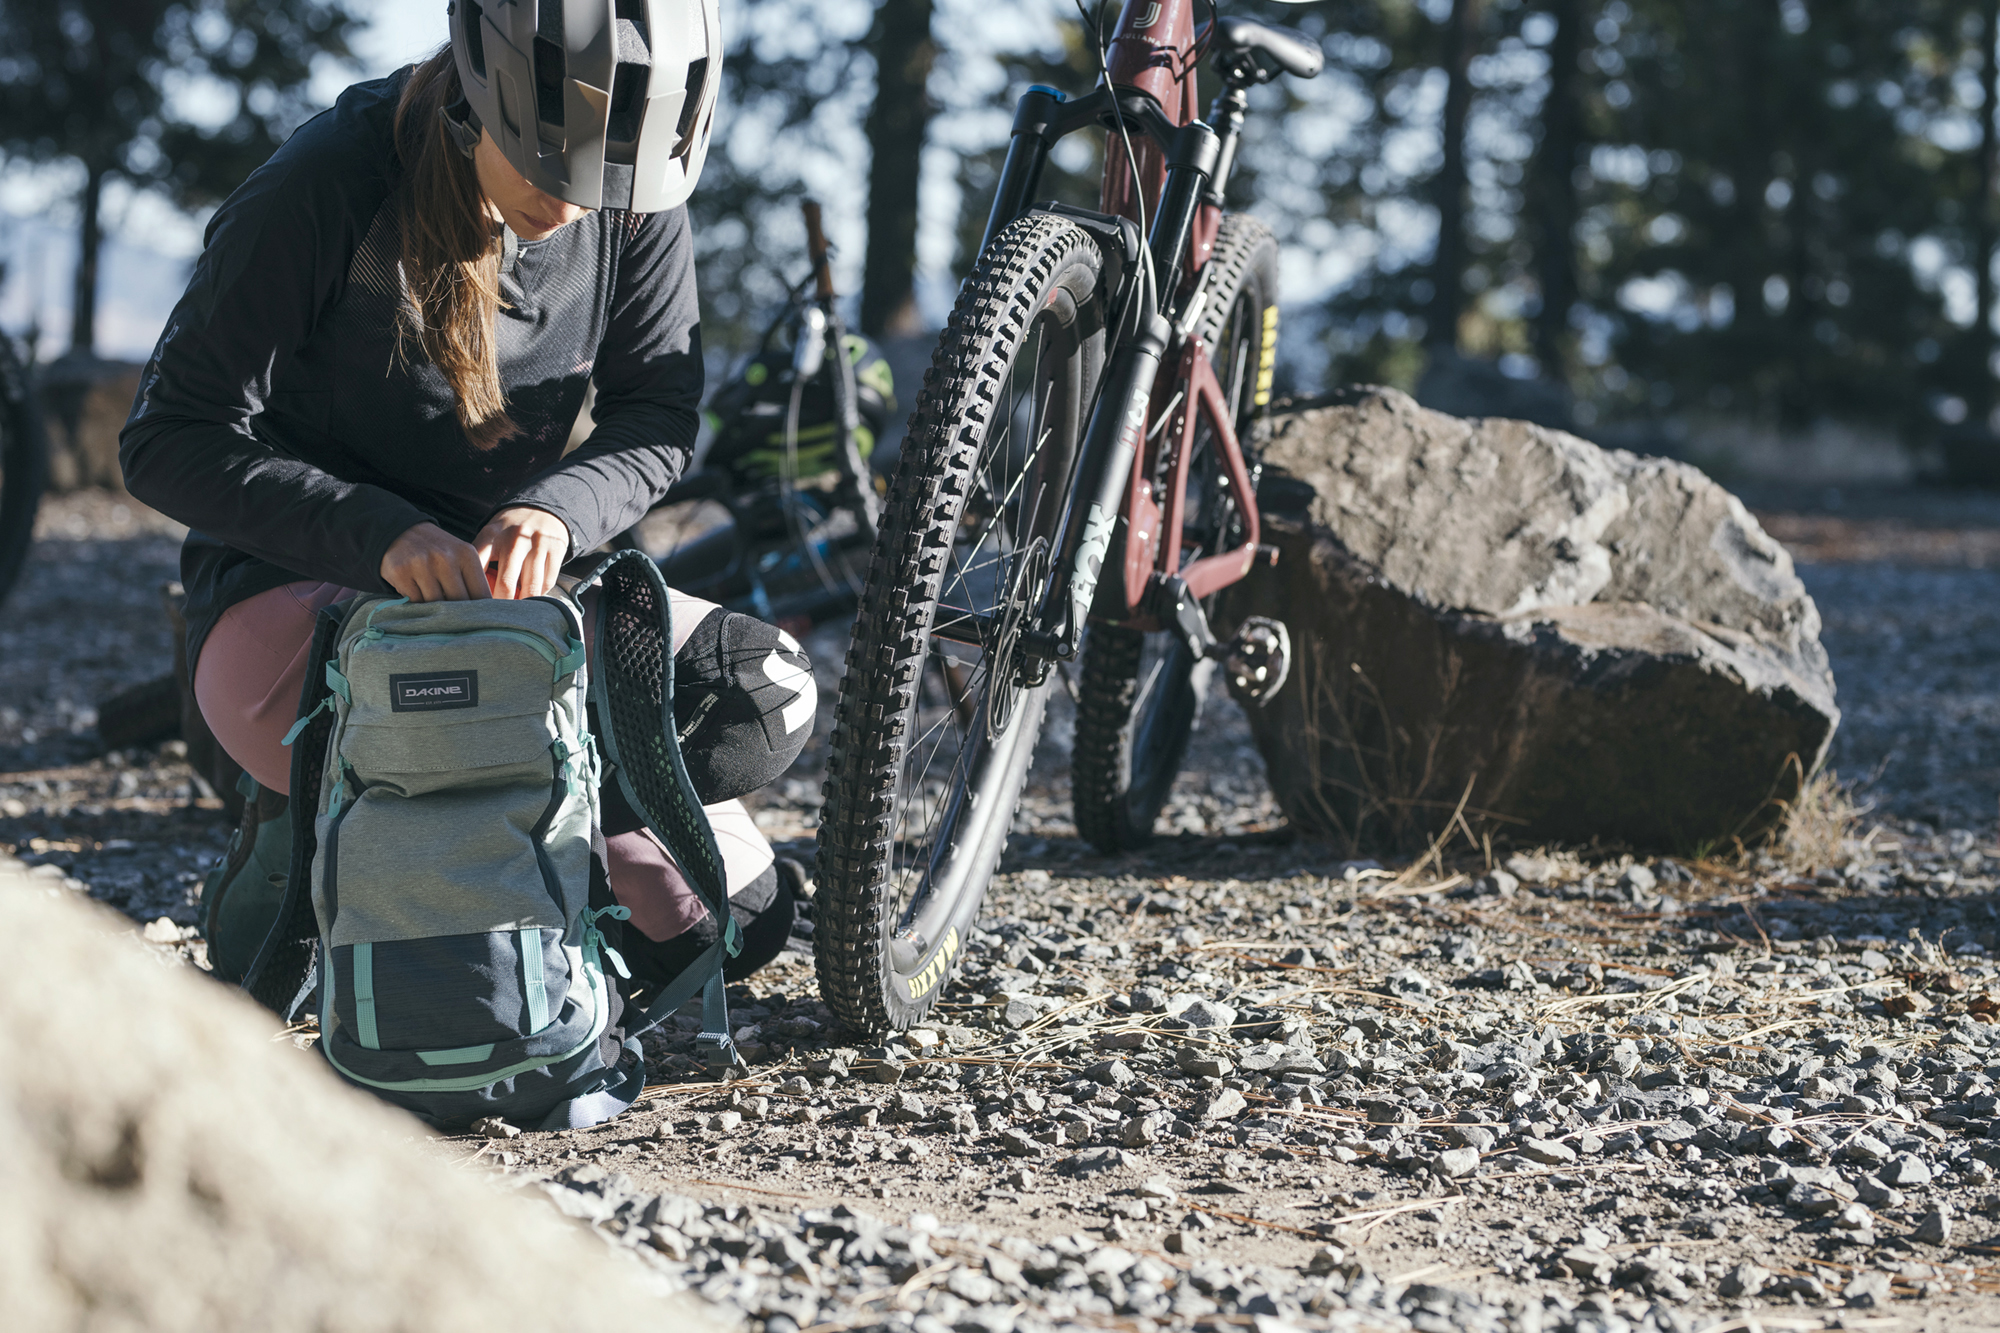 Make sure you have the gear you need before you hit the trail.